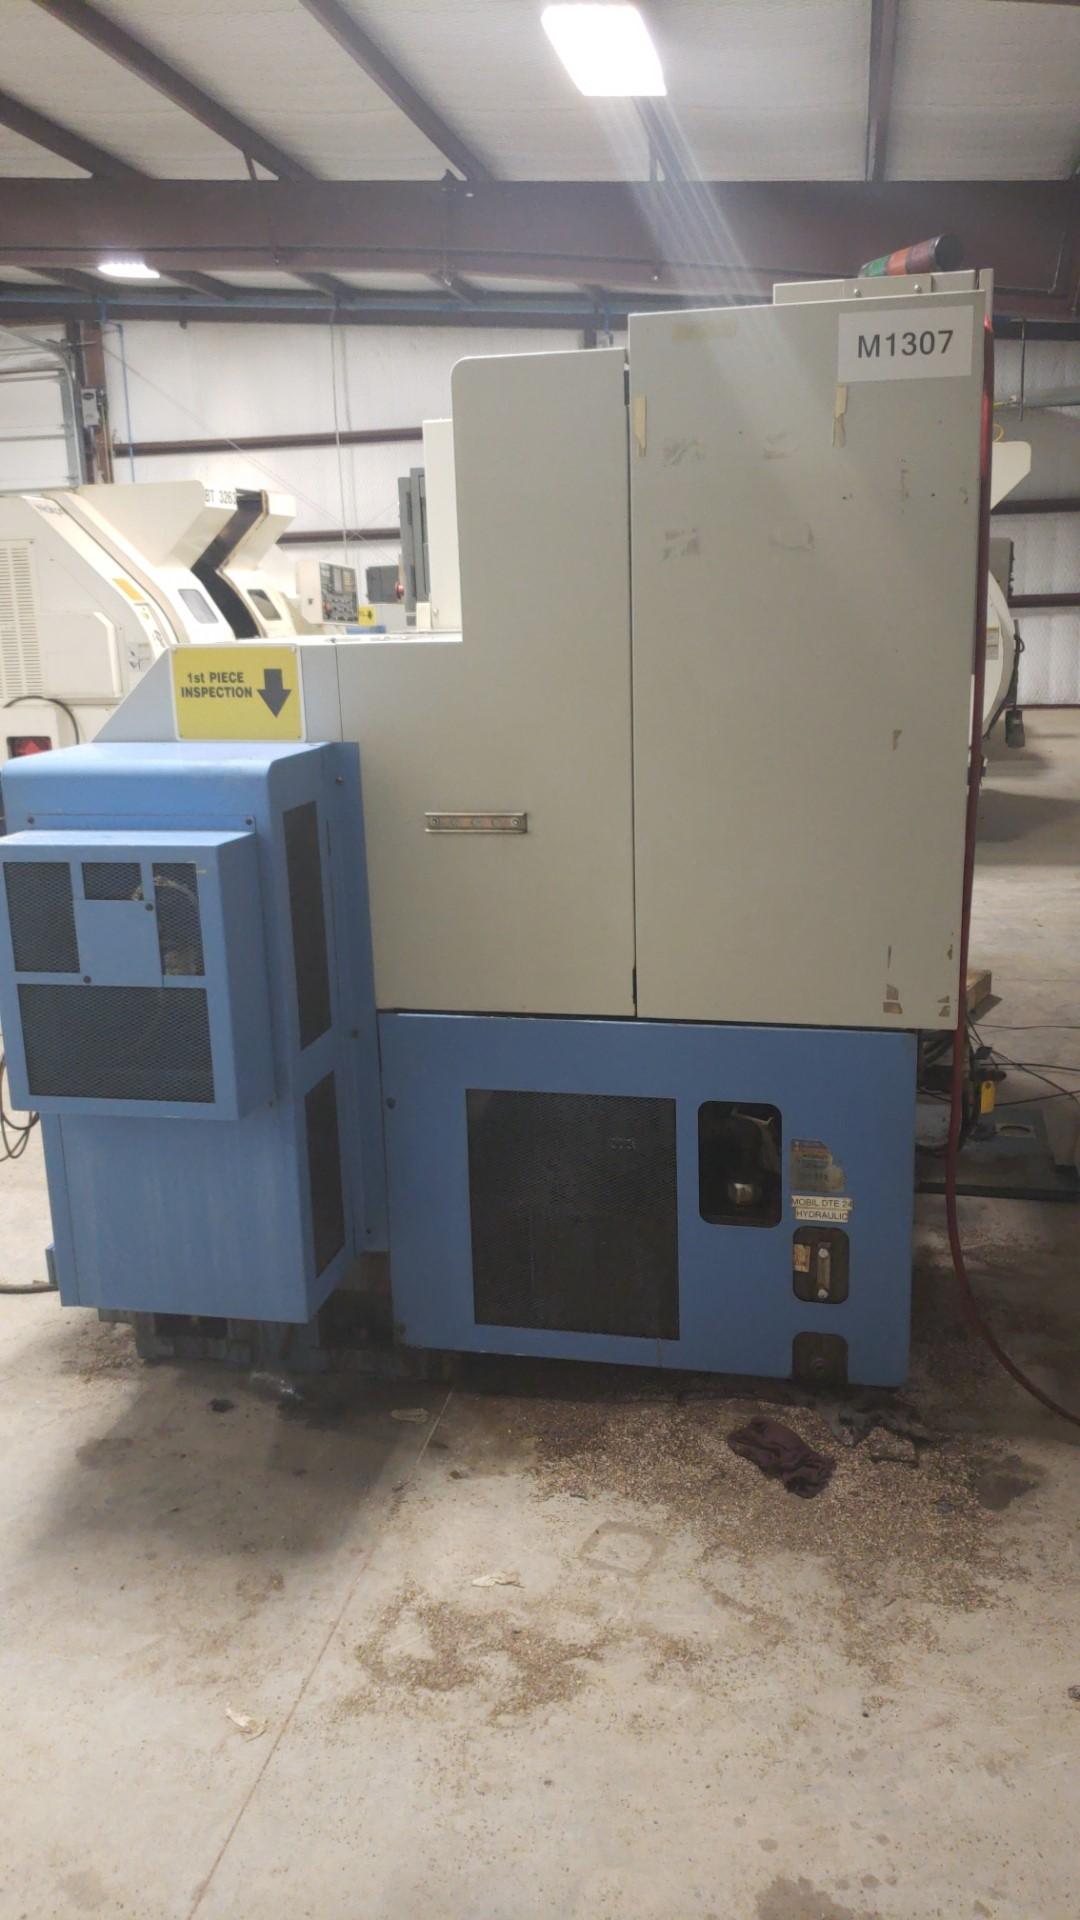 2004 Mazak Dual Turn 20 4 Axis Twin Spindle Twin Turret Opposed CNC Turning Center, rear discharge - Image 6 of 9